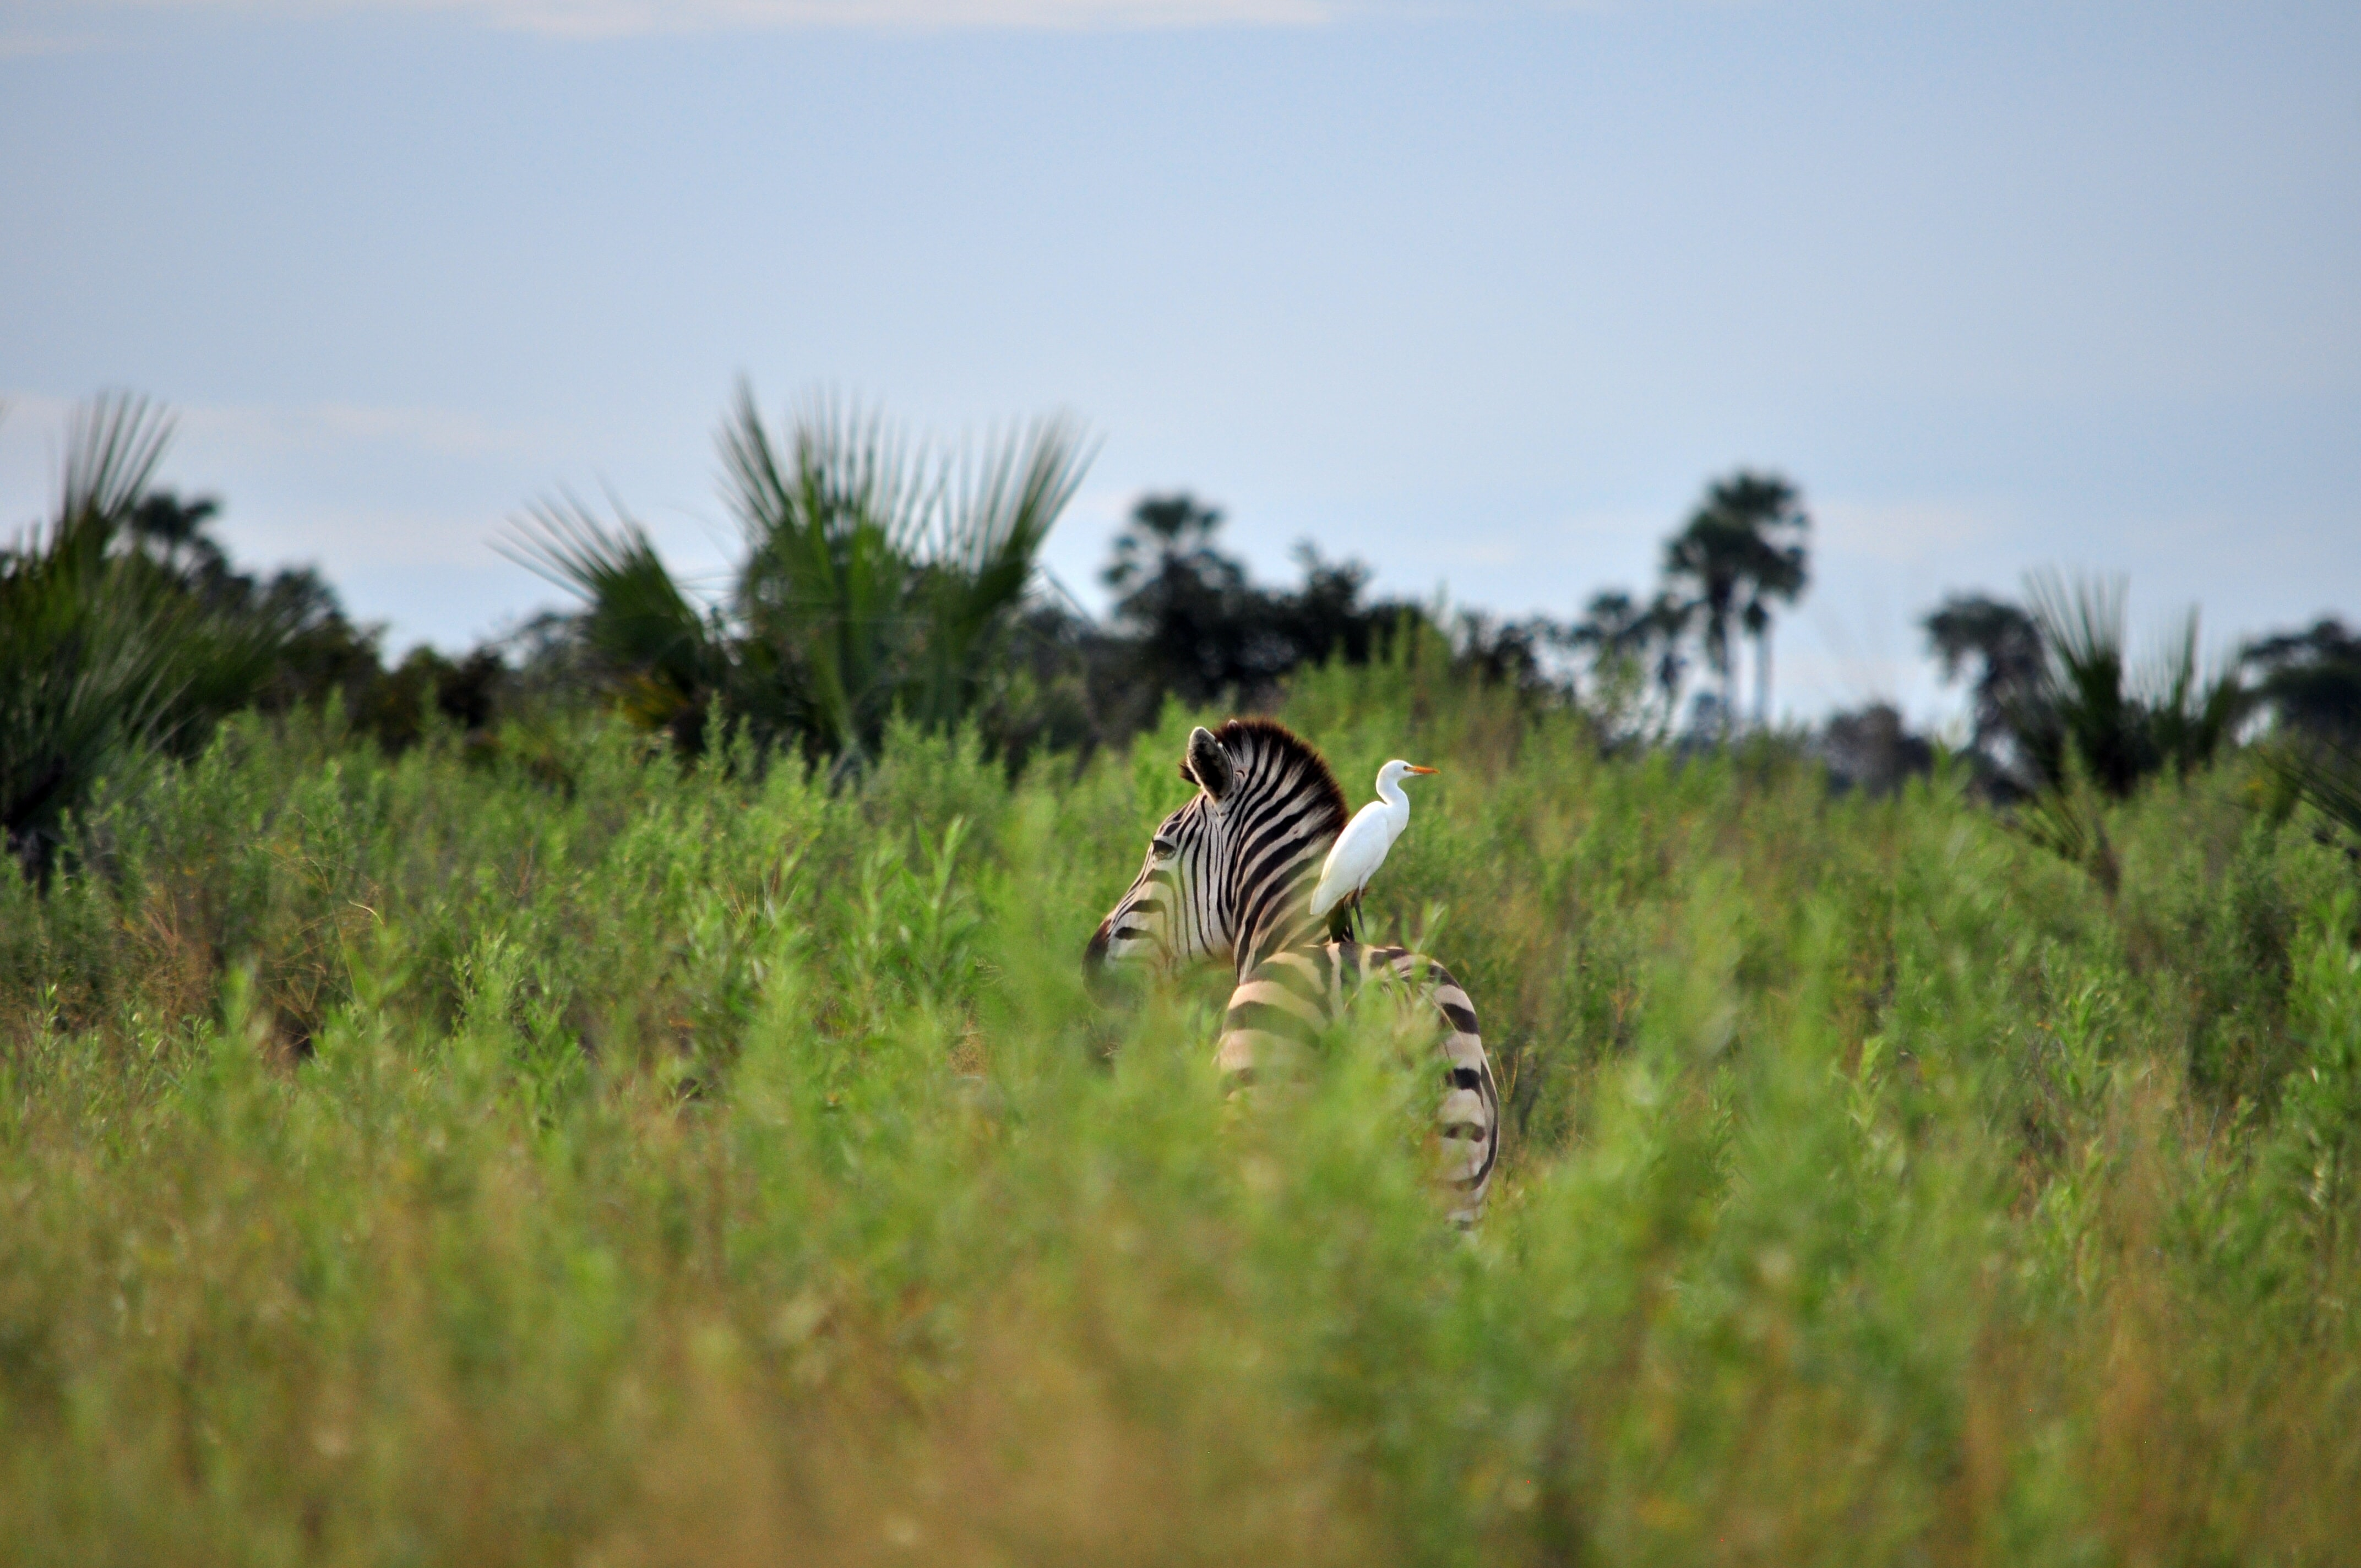 white bird perched on zebra back surrounded by green leaf plants at daytime